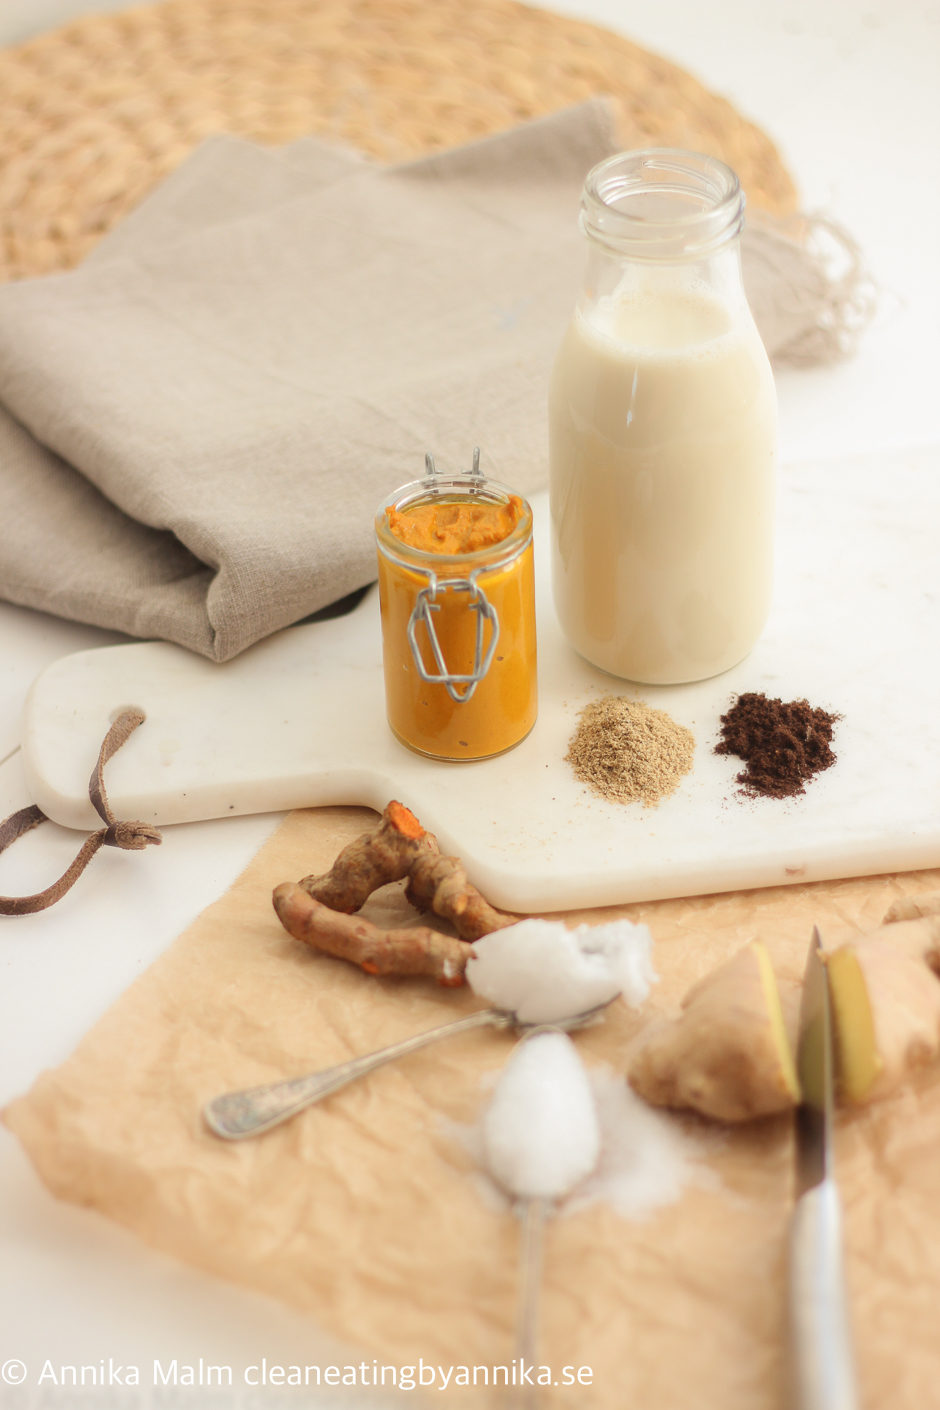 golden-milk-clean-eating-by-annika-foto-annika-malm-3